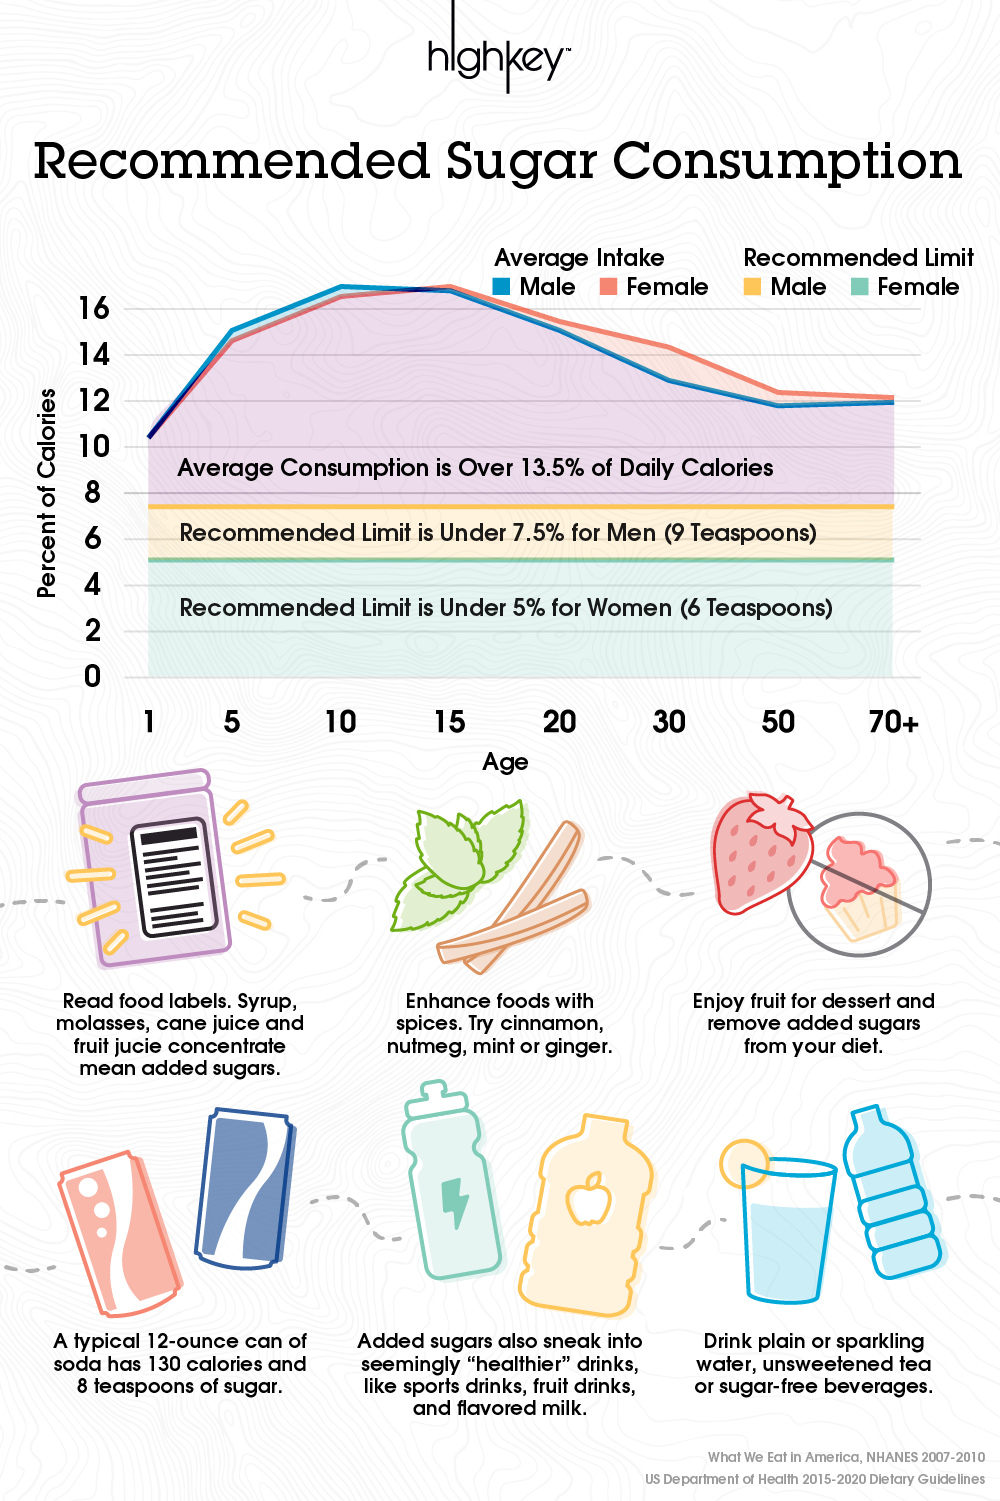 Infrographic recaps the chart earlier in the blog post which showed recommendations for added sugar intakes being less than 10%. Below it, are tips for how to cut back on added sugars. 1. Read nutrition labels 2. Enhance foods with spices like cinnamon, nutmeg, mint or ginger. 3. Enjoy fruit for dessert and remove added sugars from your diet. 4. Stick to sugar-free beverages like plain and sparkling water, unsweetened tea and black coffee.